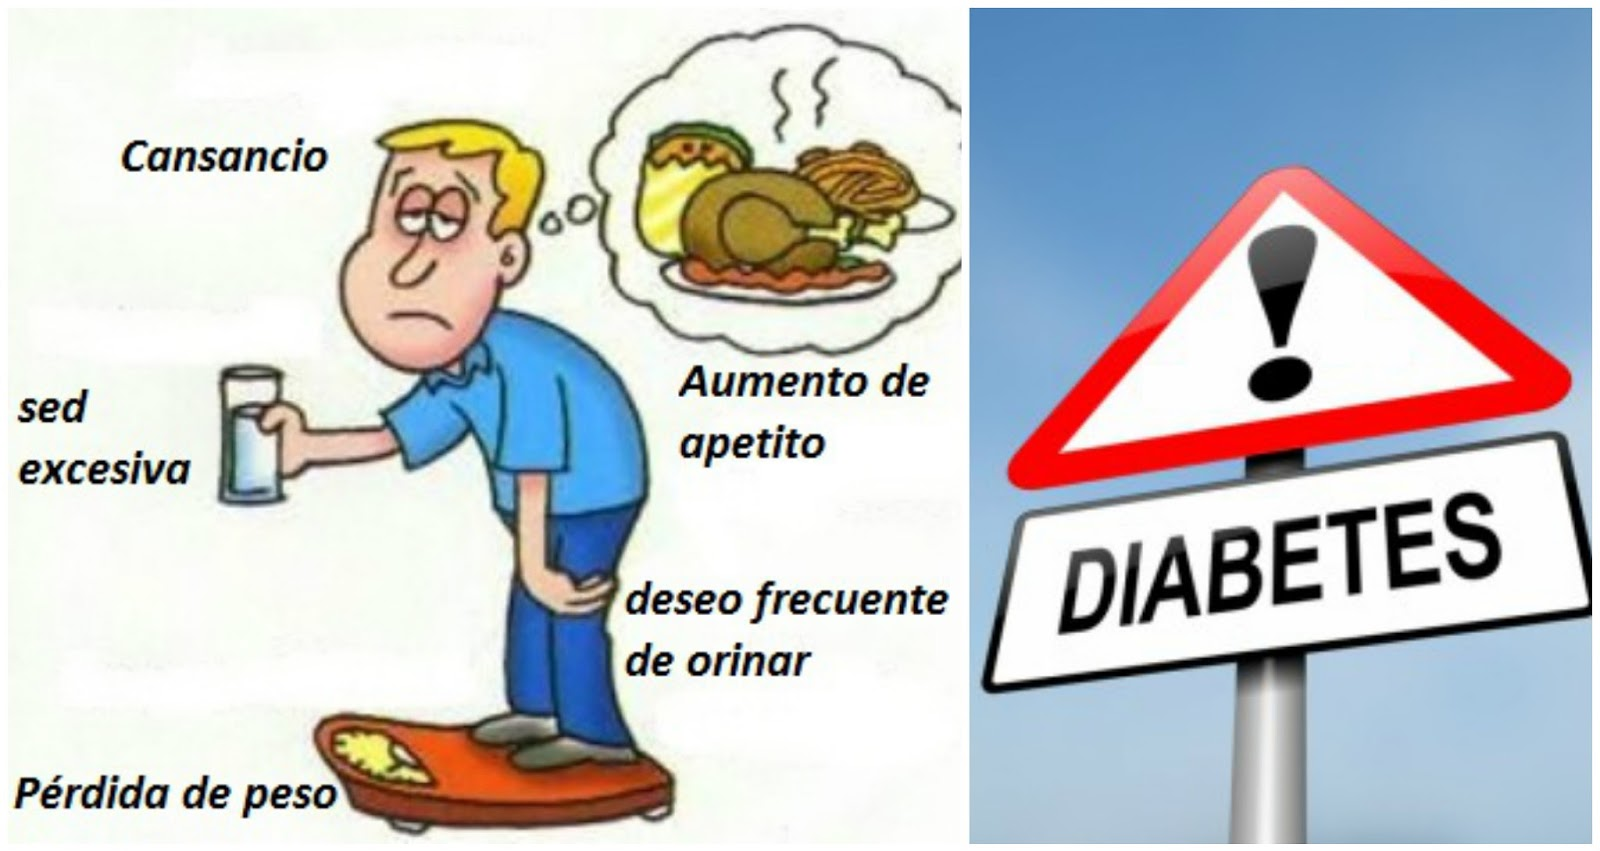 diabetes 2: Misunderstanding of diabetes treatment!